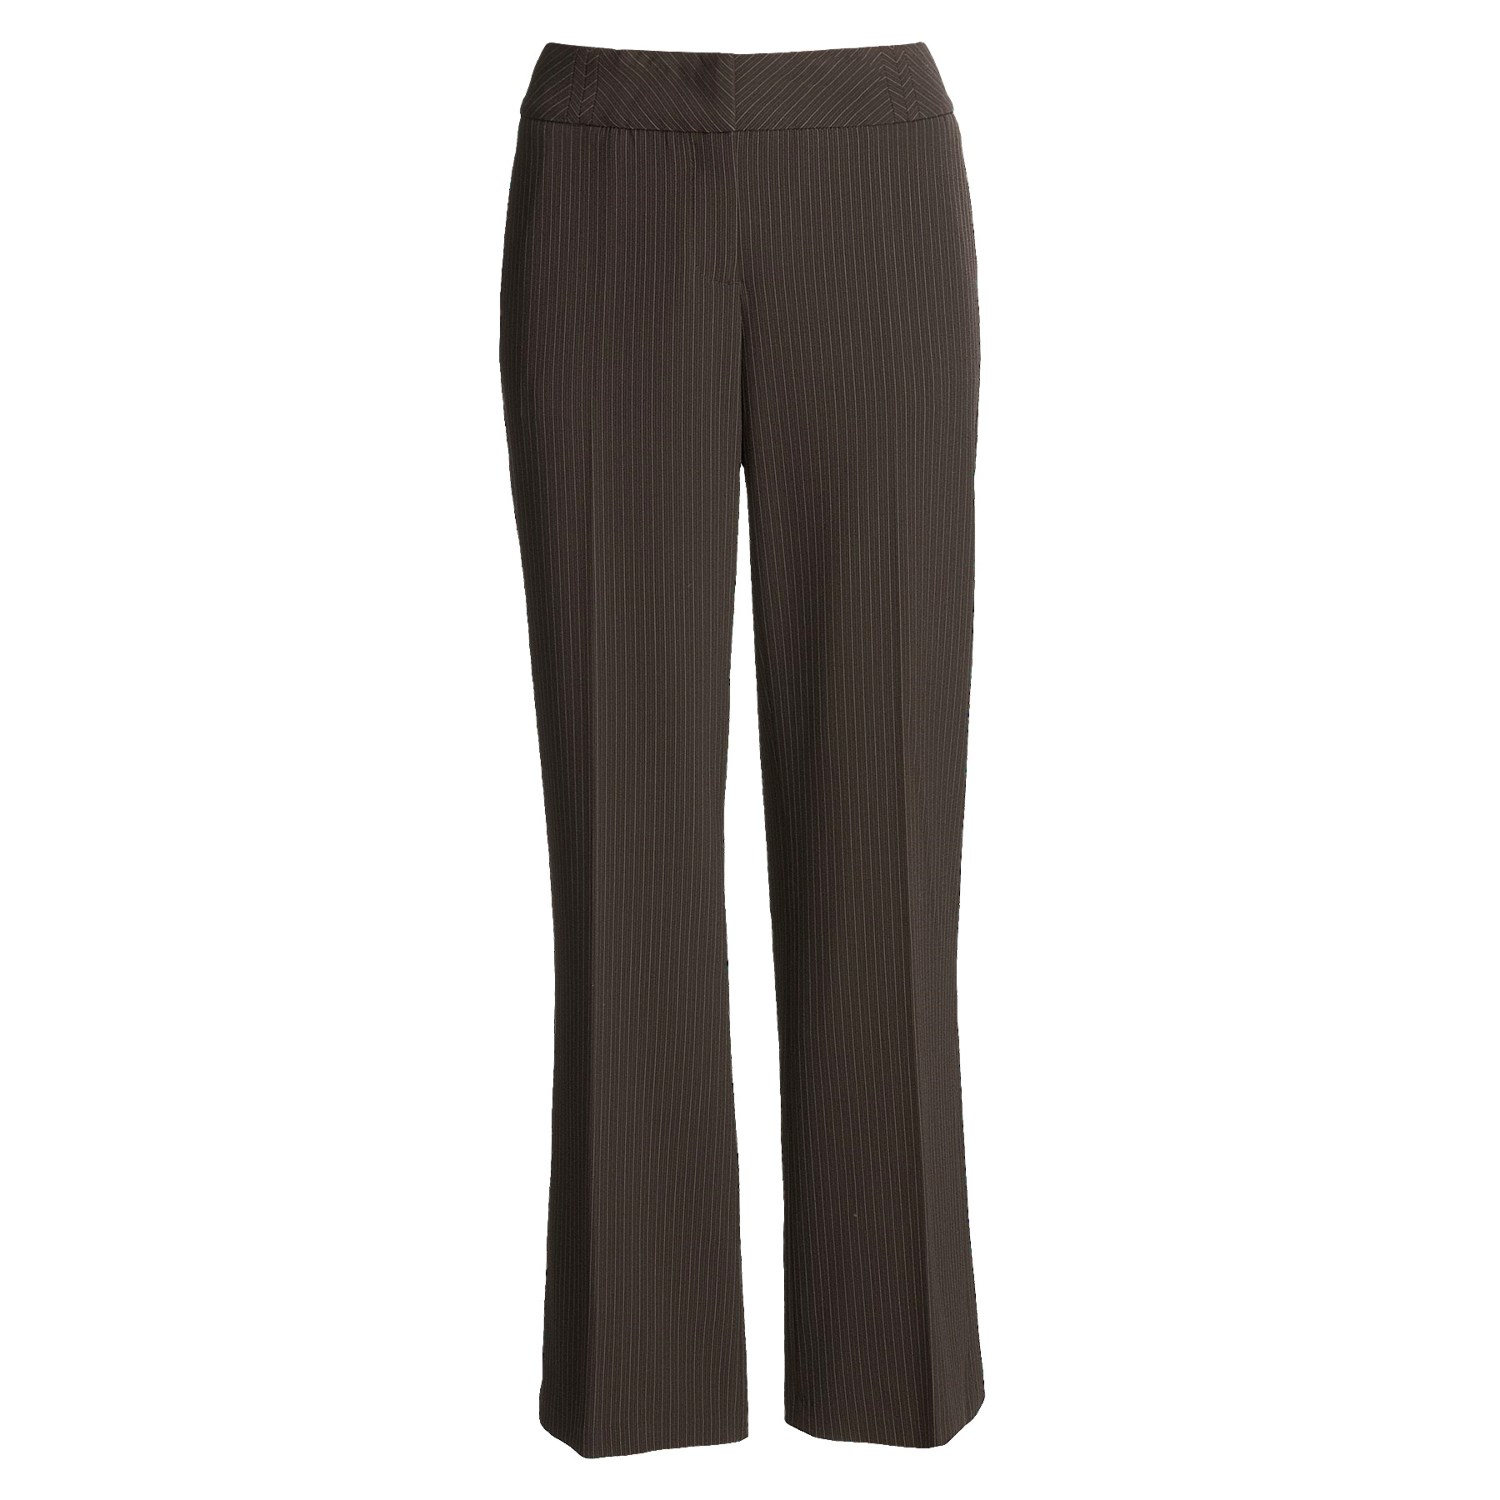 Striped Dress Pants For